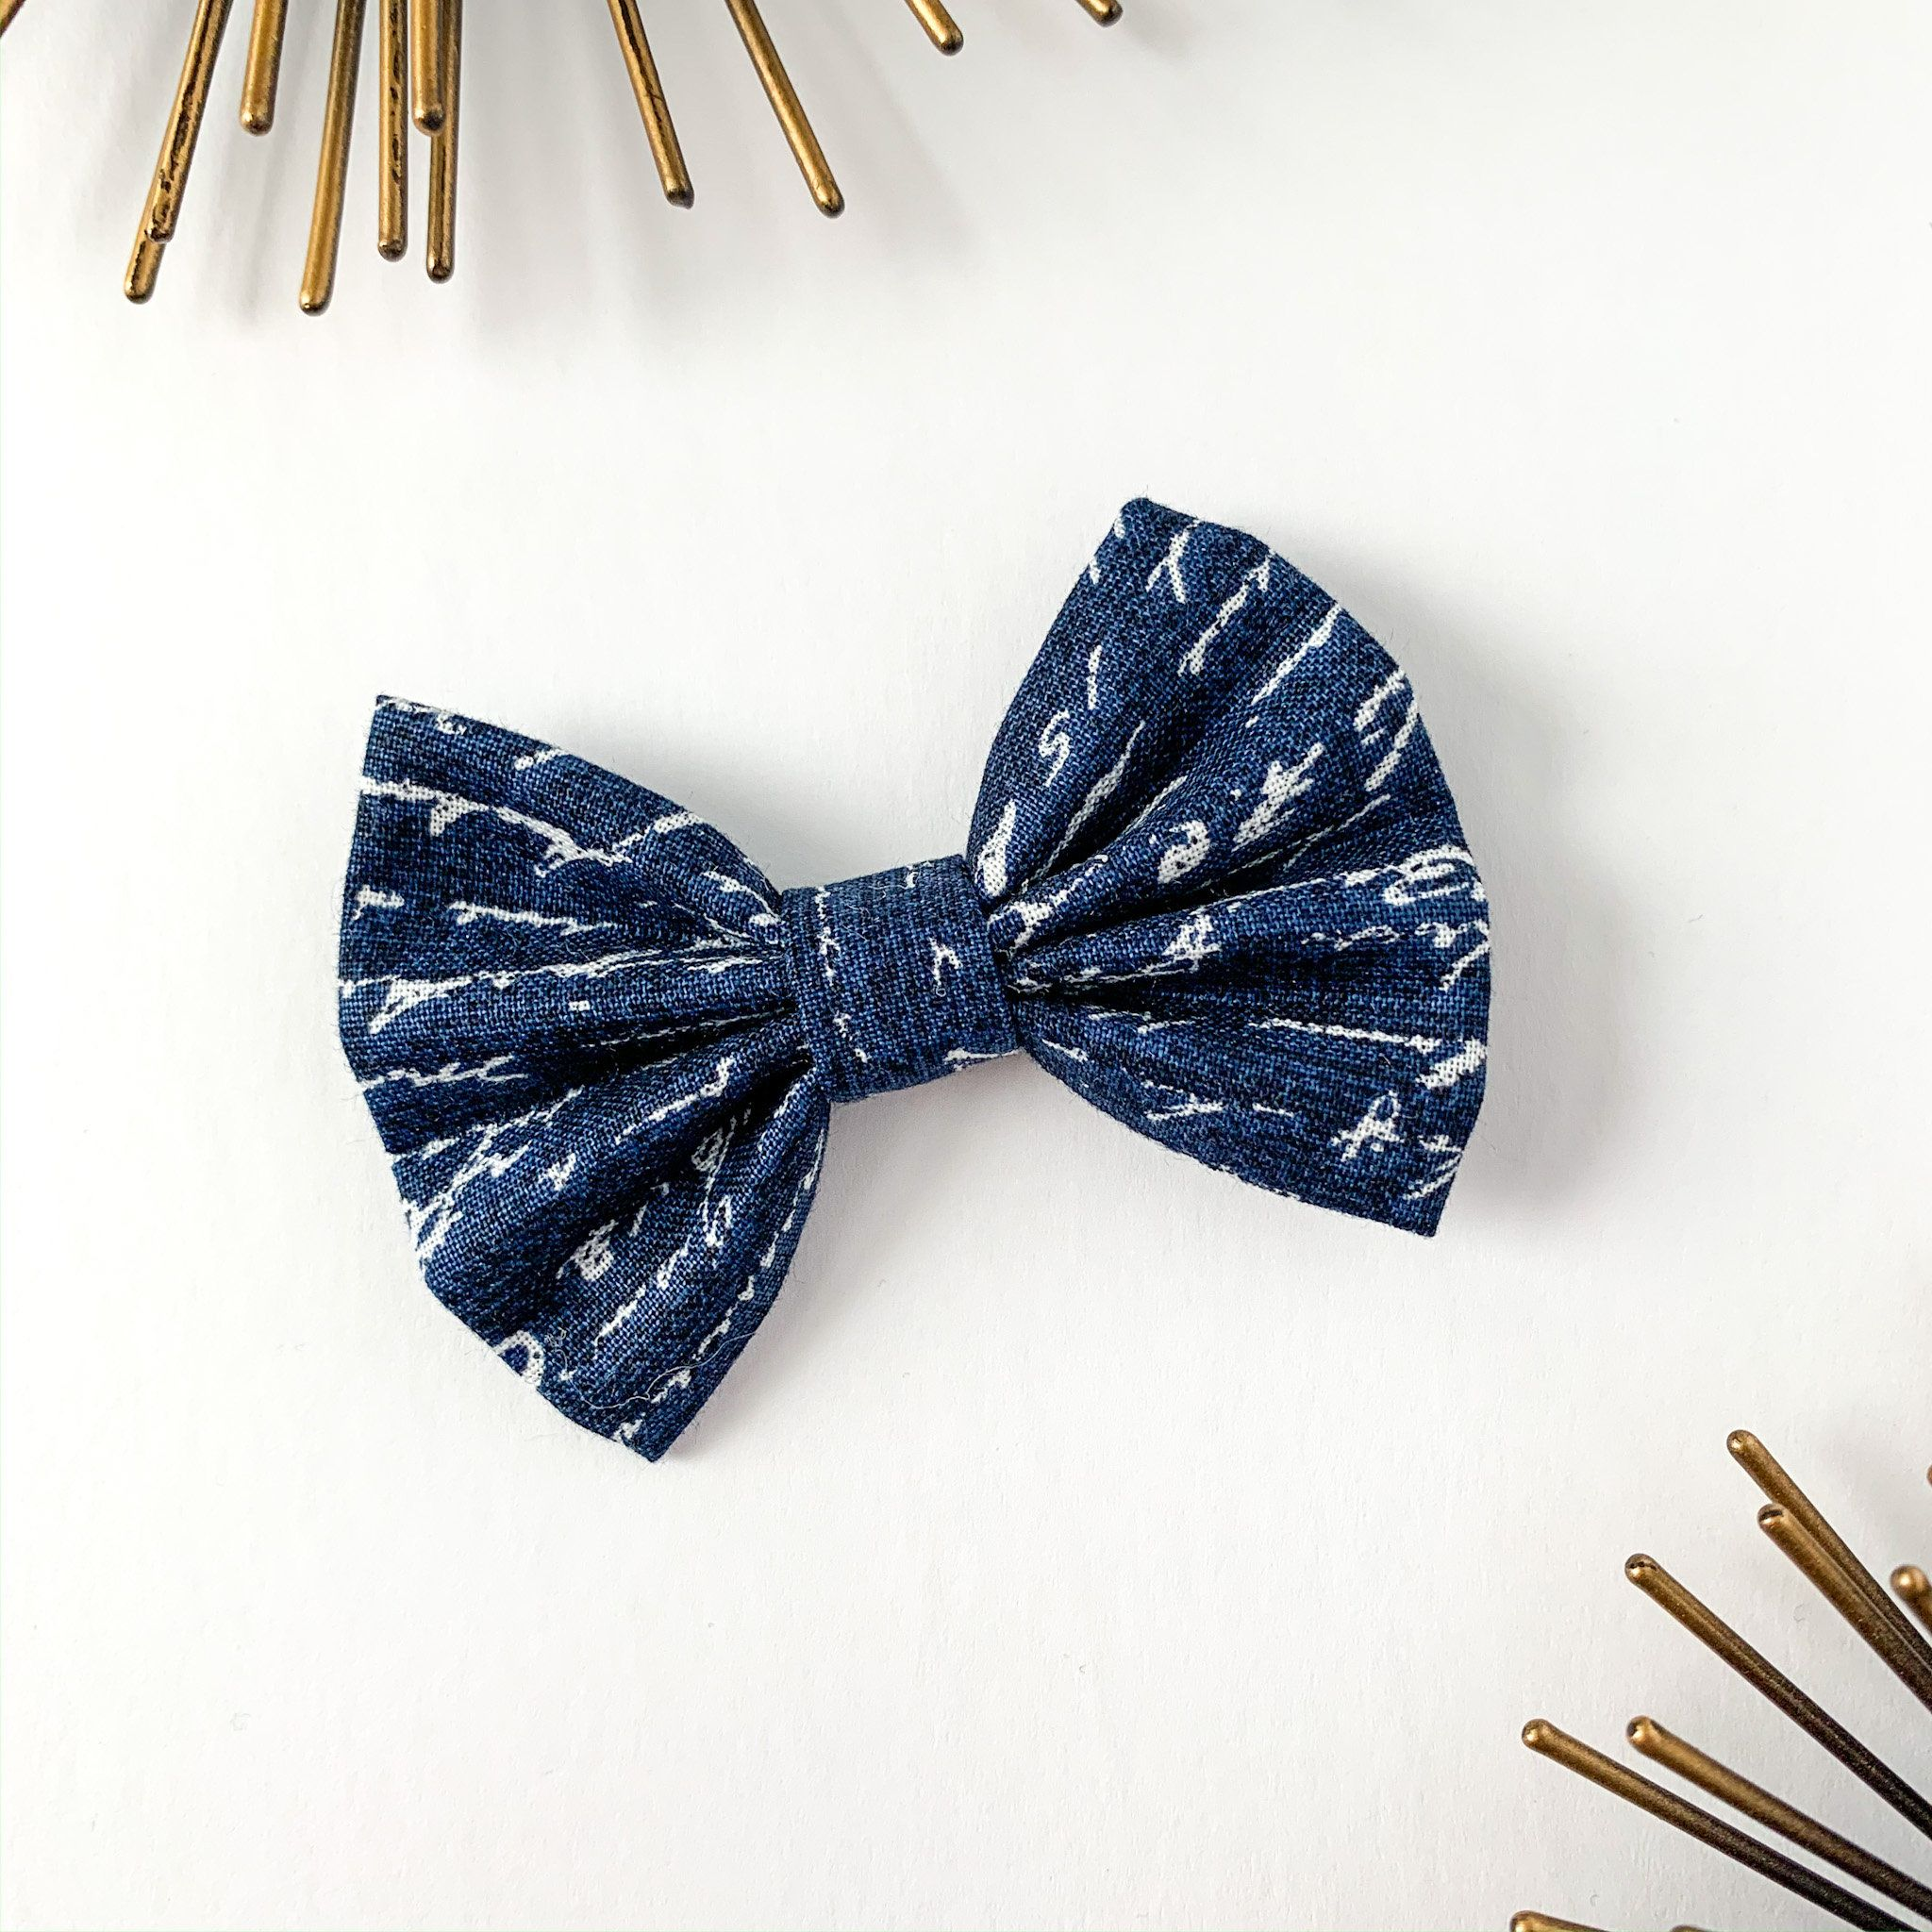 Excited to share this item from my #etsy shop: Navy Girls Hair Bow